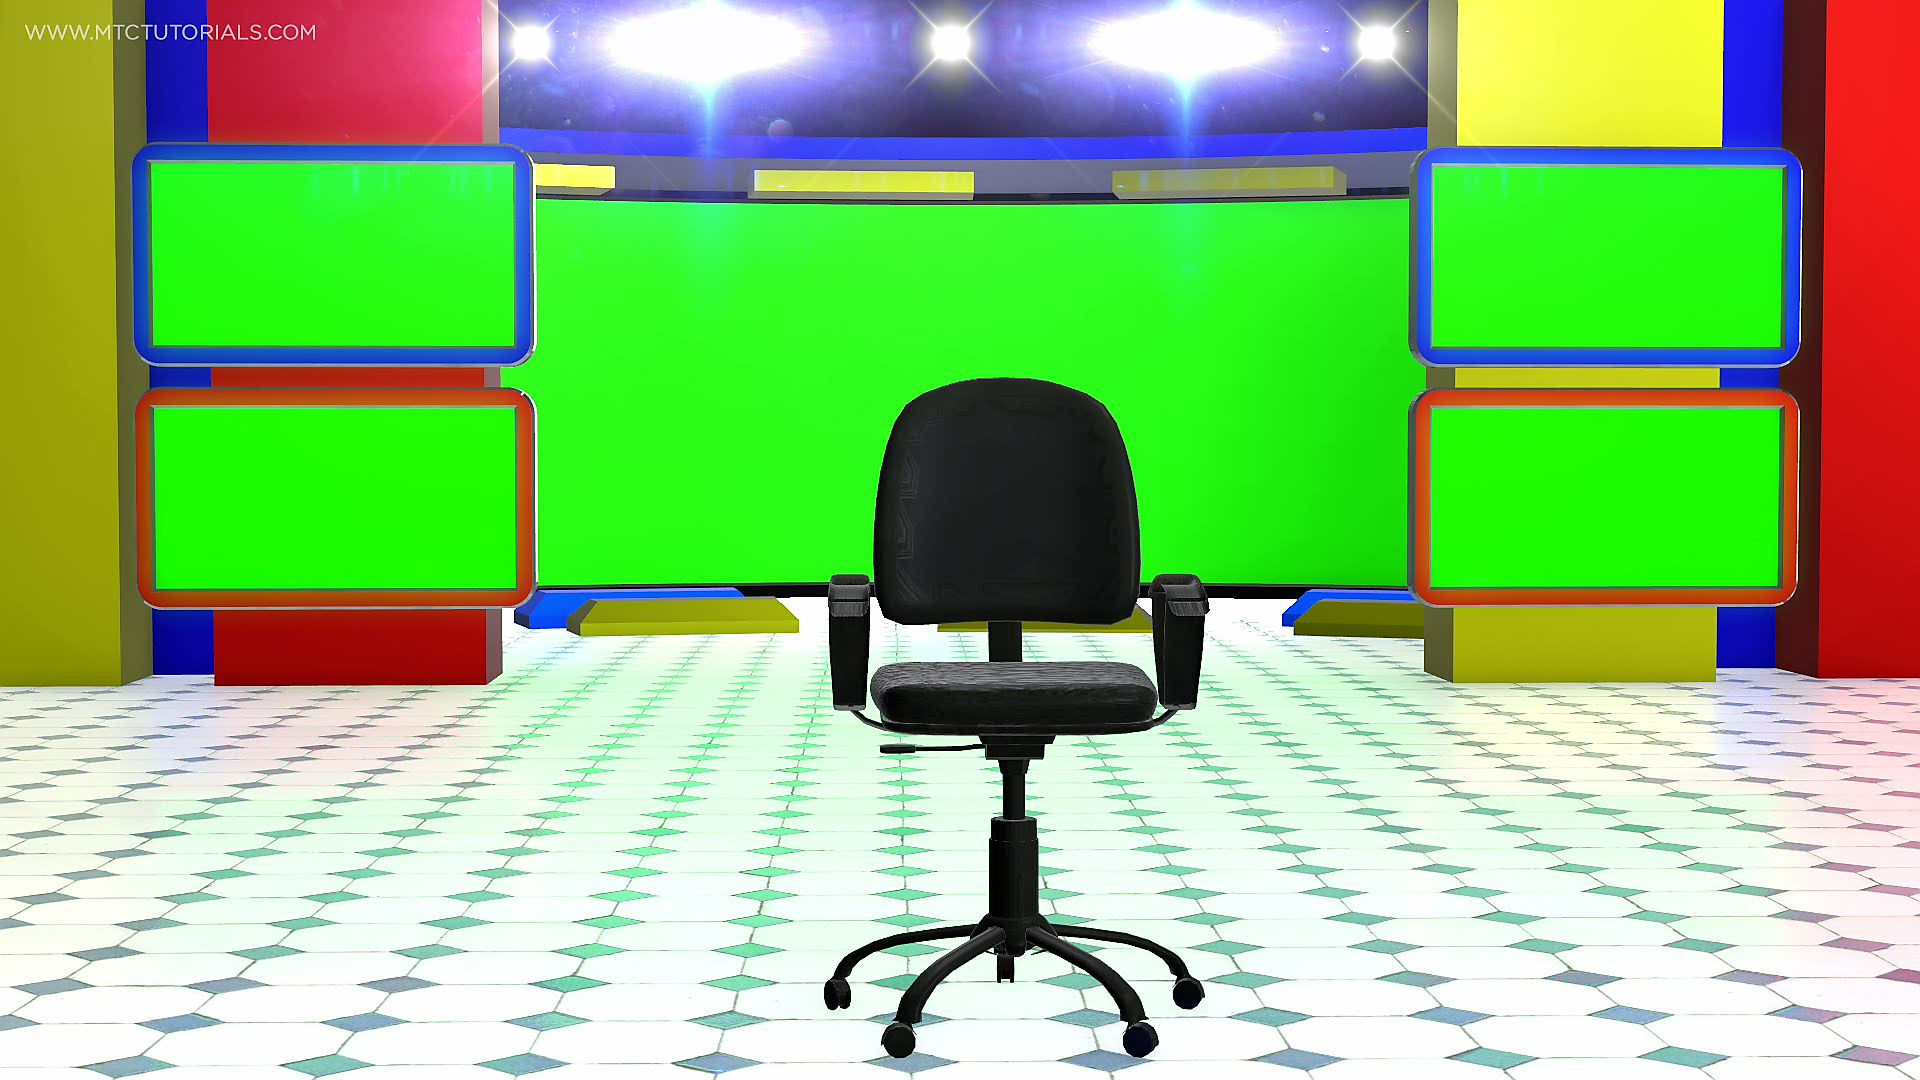 News Desk Free Wallpapers Green Screen By MTC Tutorials